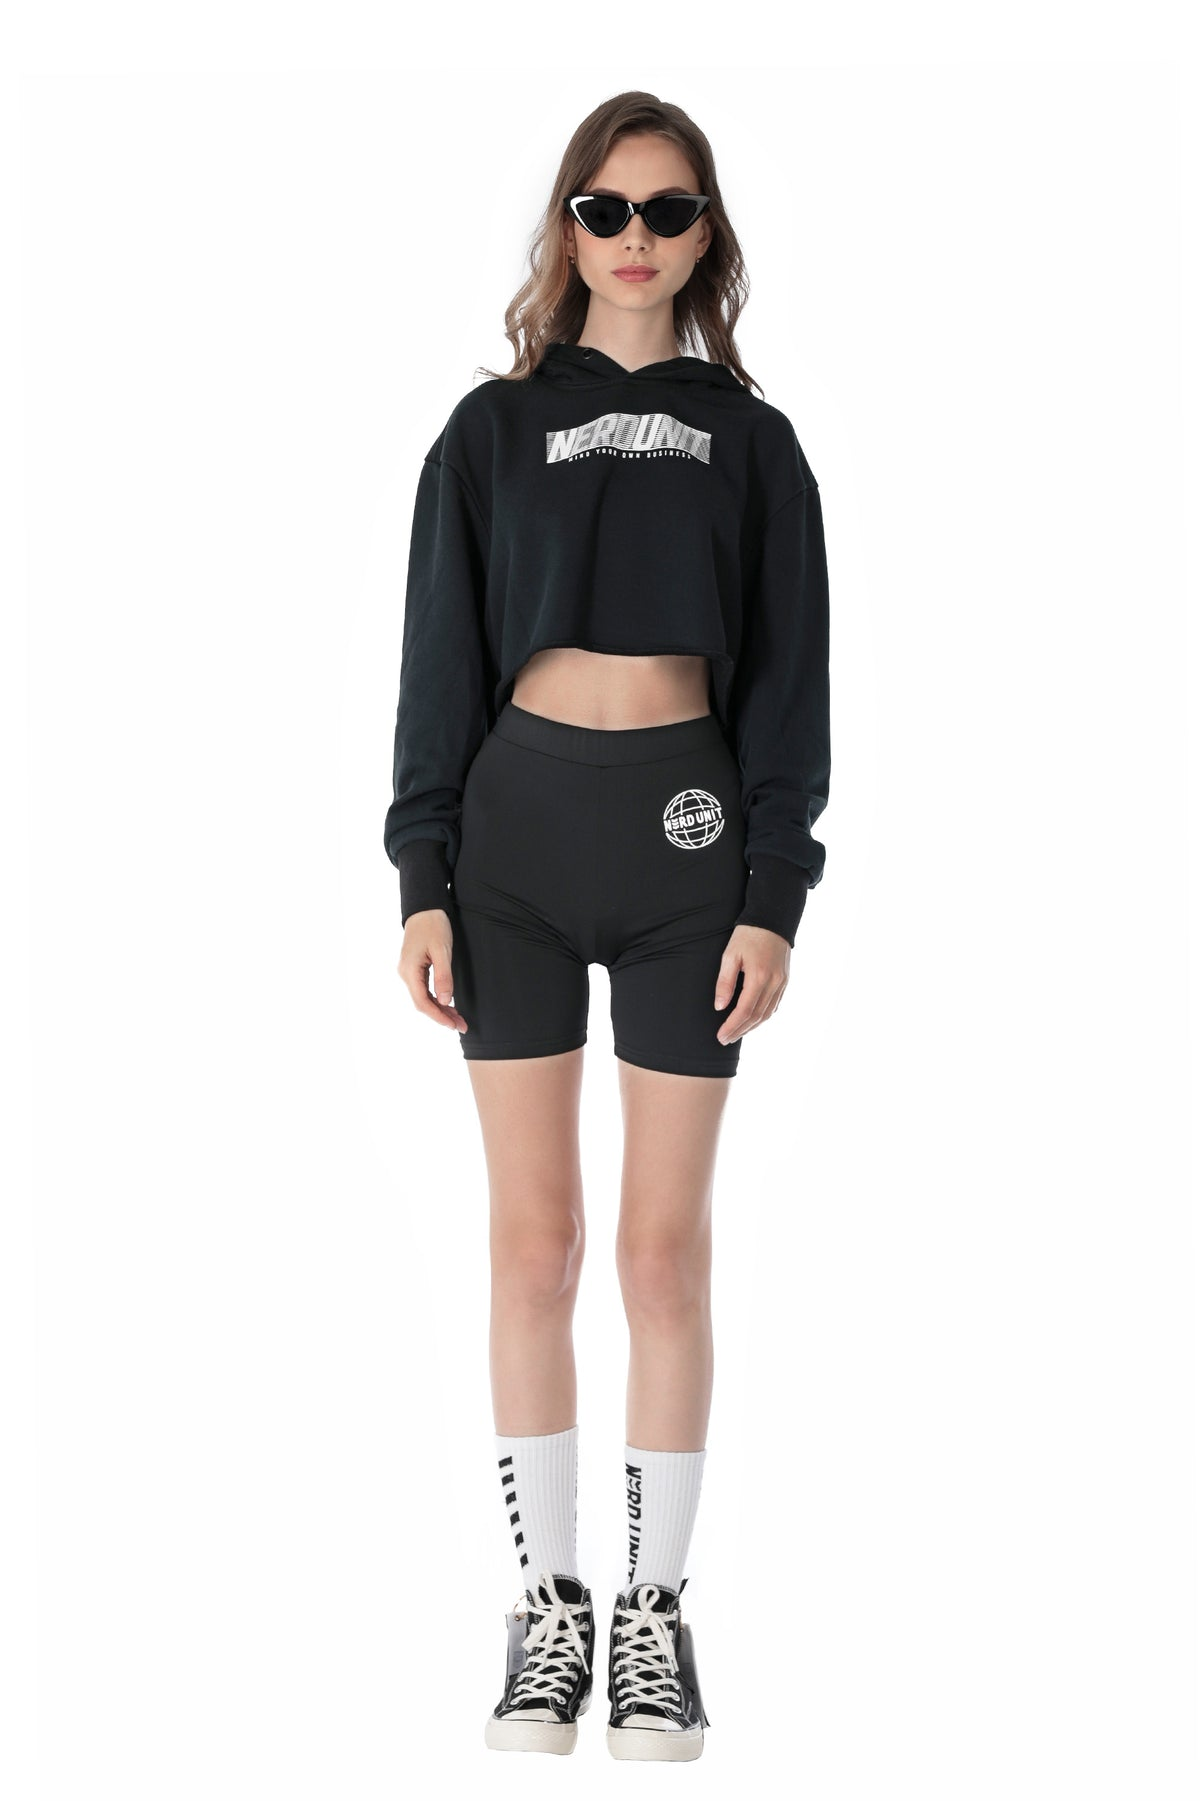 ACTIVE HOODED CROP TOP | BLACK ( アクティブ フーディー クロップトップ | ブラック  )